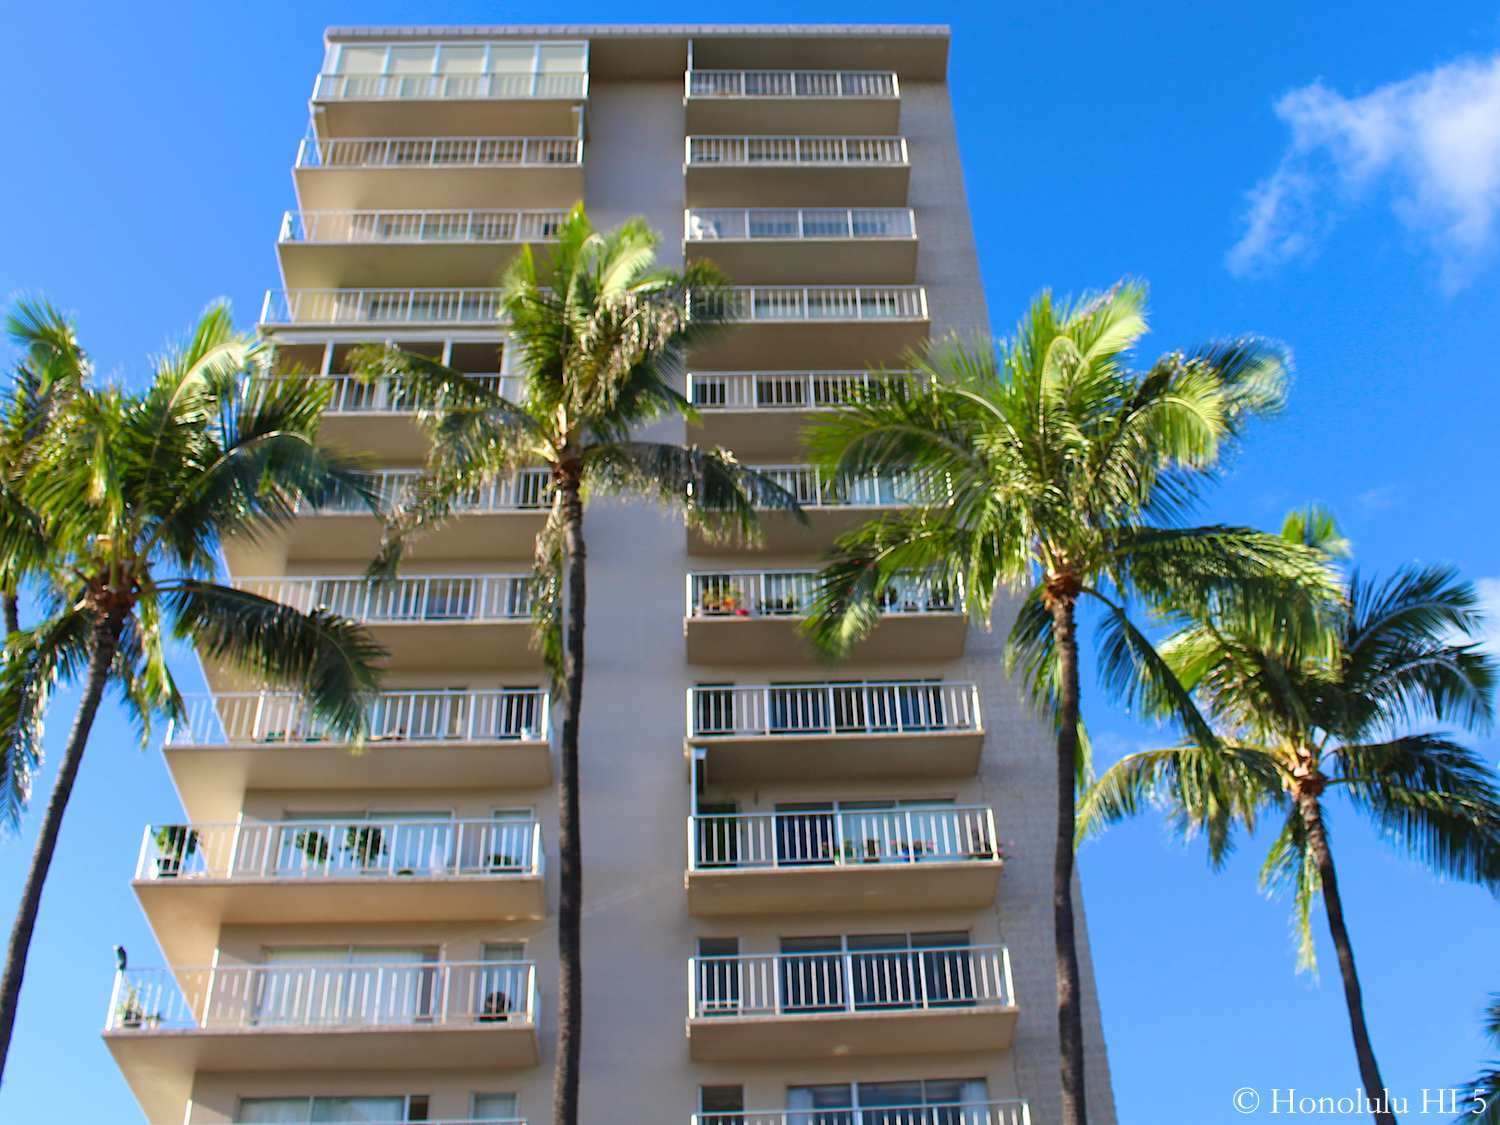 Hale Moani Condos in Waikiki. Narrow Old High-Rise Building in White with Lanais and Palm Trees in Front